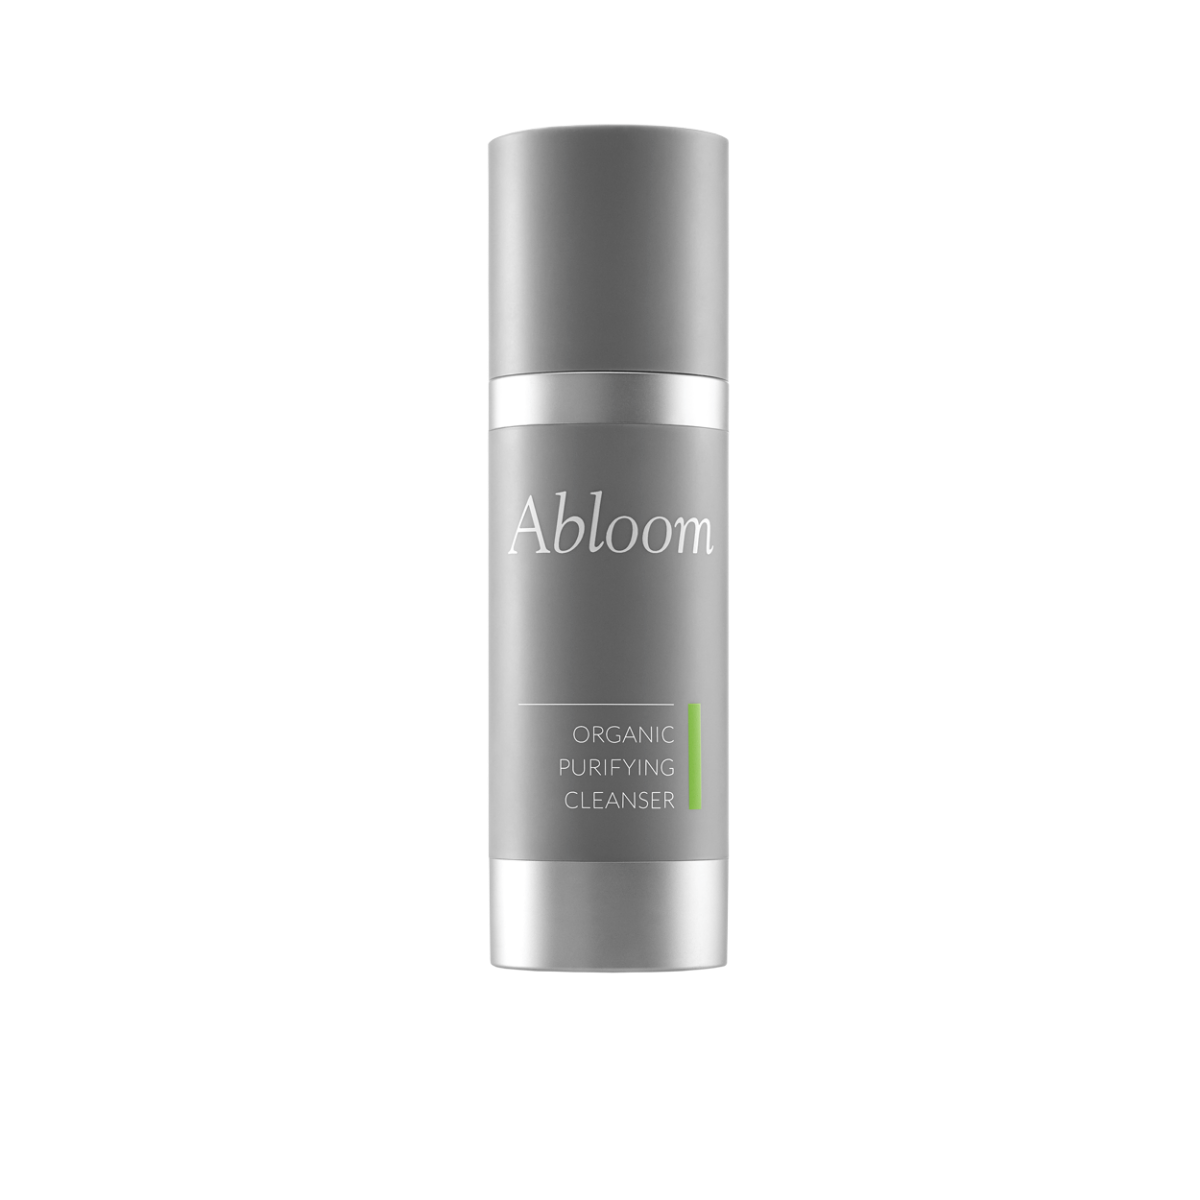 abloom_organic_purifying_cleanser_white_def